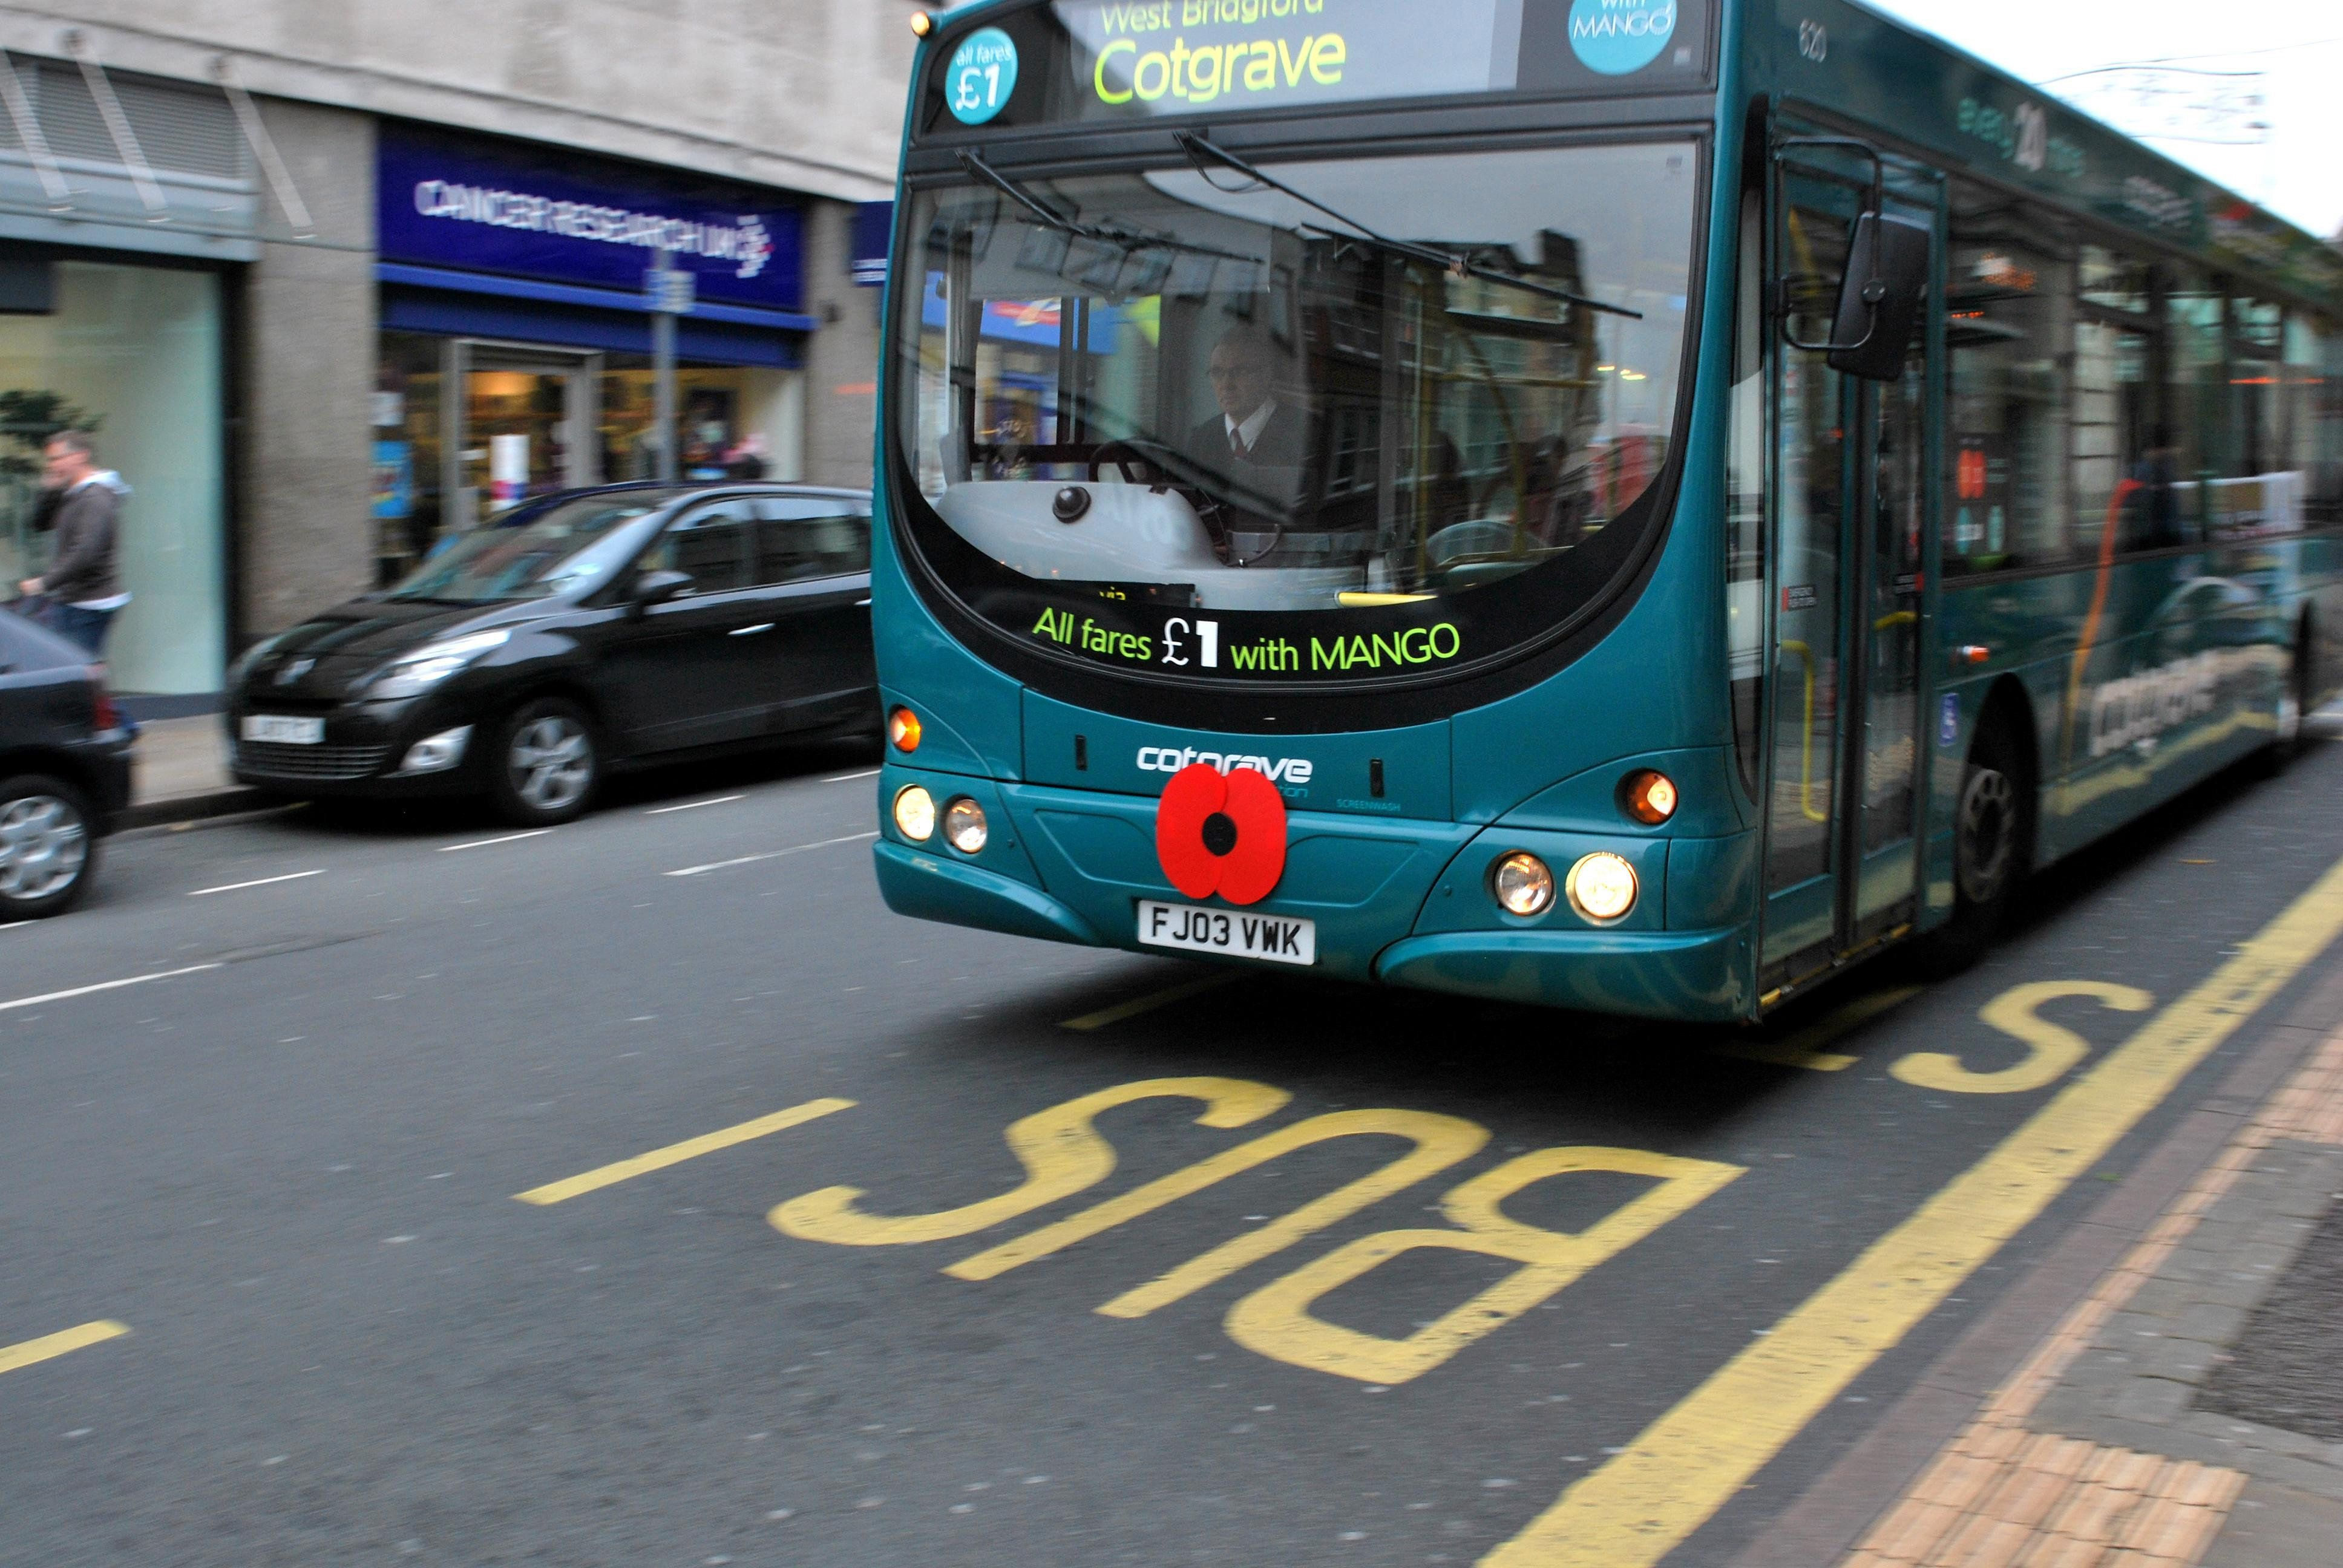 Bus Services In 'Crisis' As More Than 3,000 Routes Altered, Reduced Or